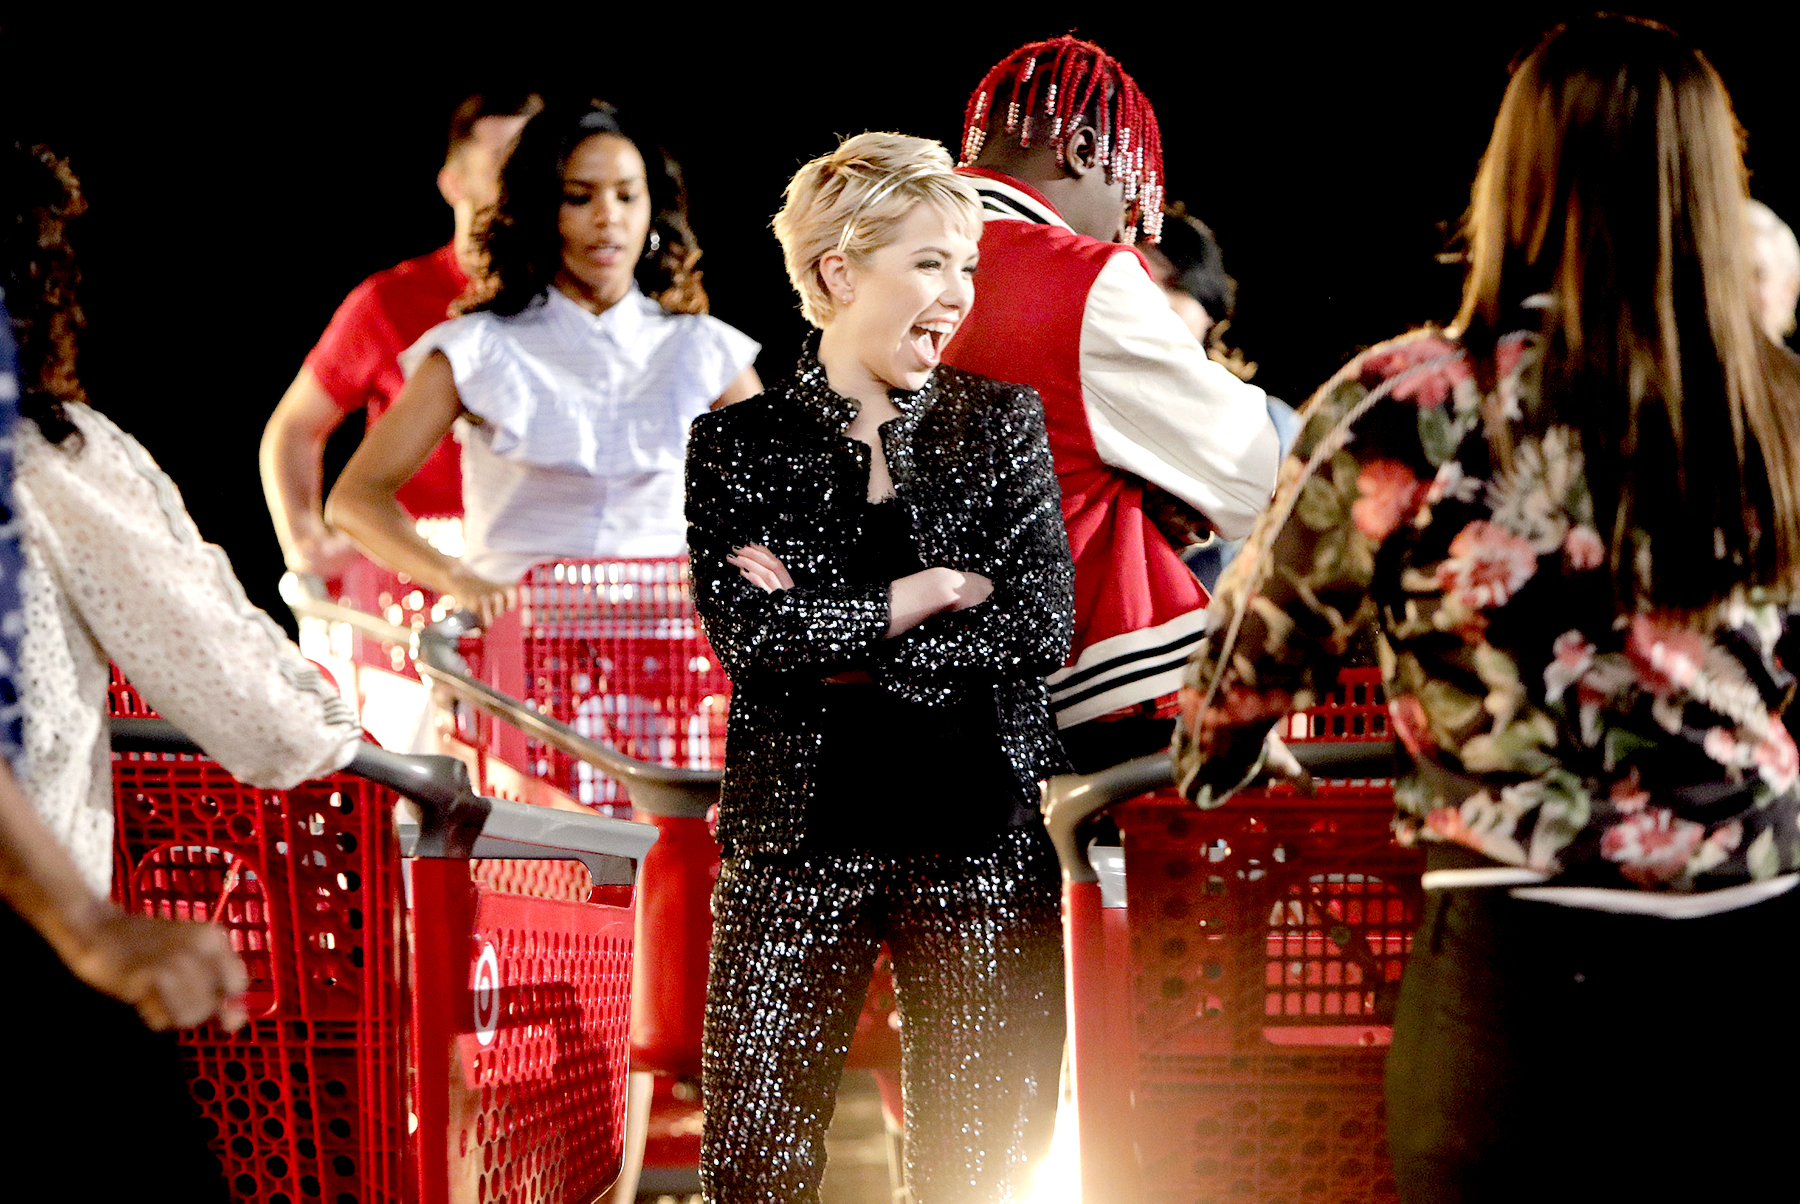 Carly Rae Jepsen On-Set with Target for